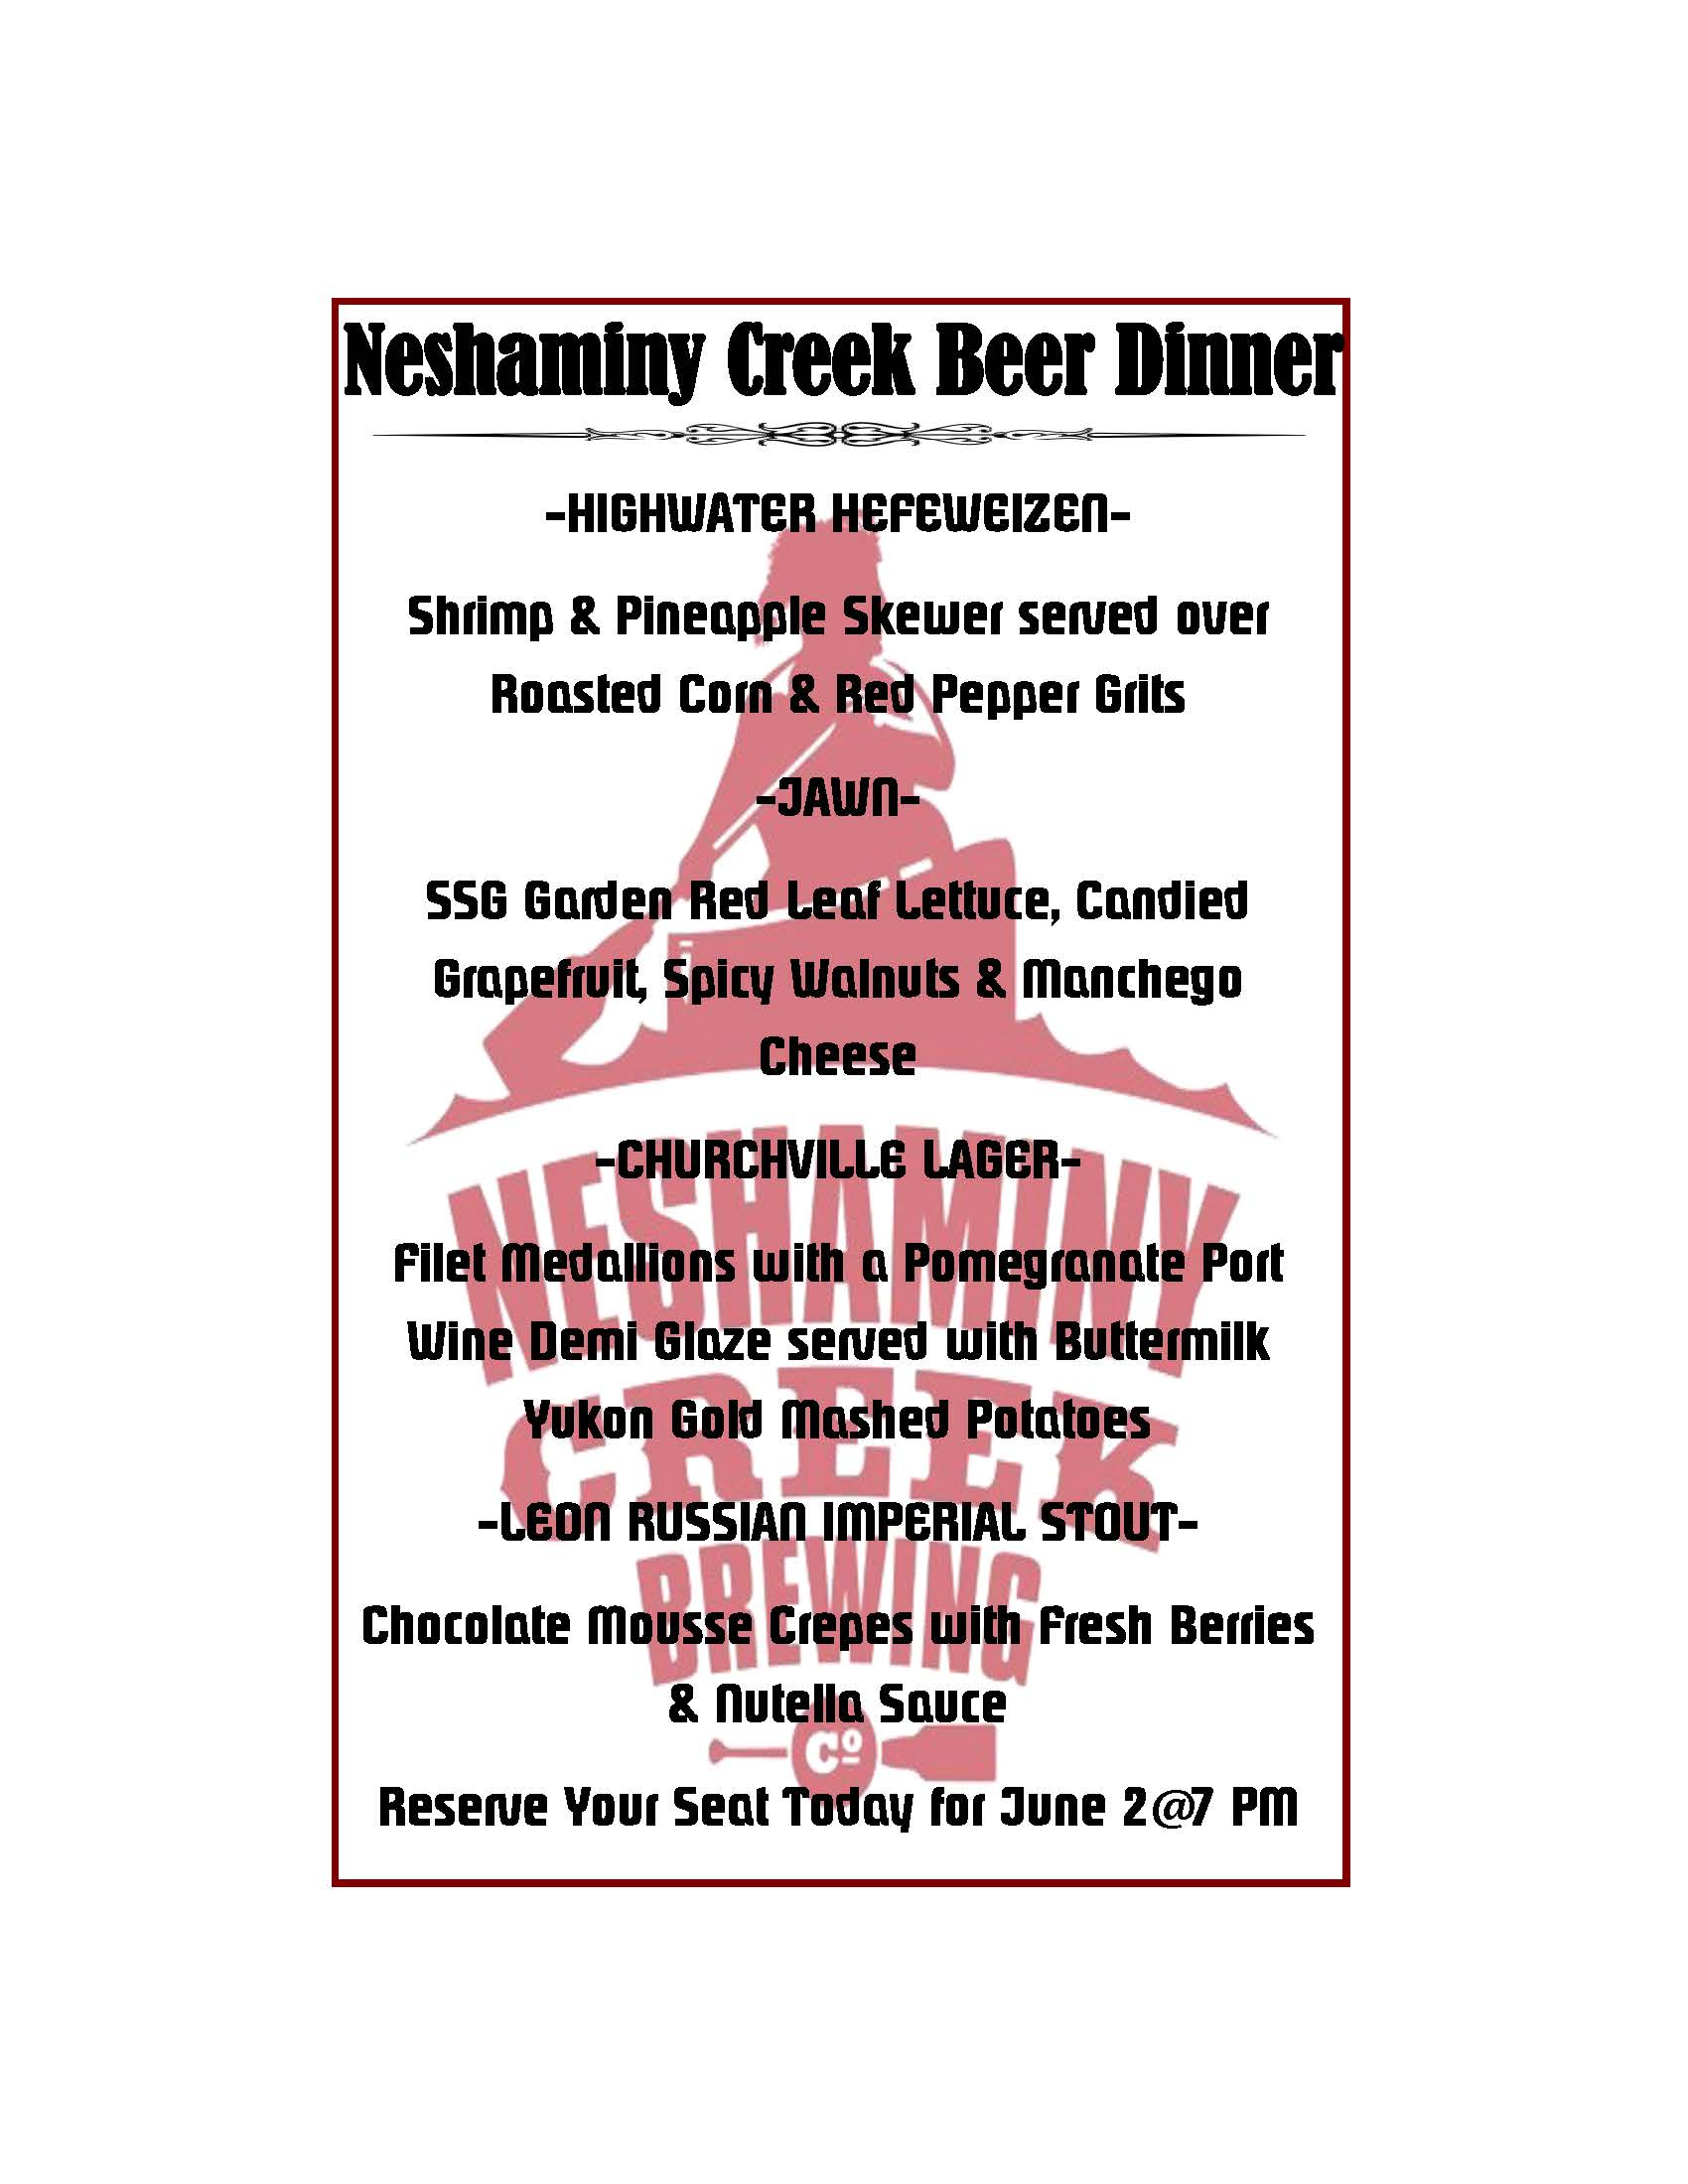 neshaminy creek dinner menu